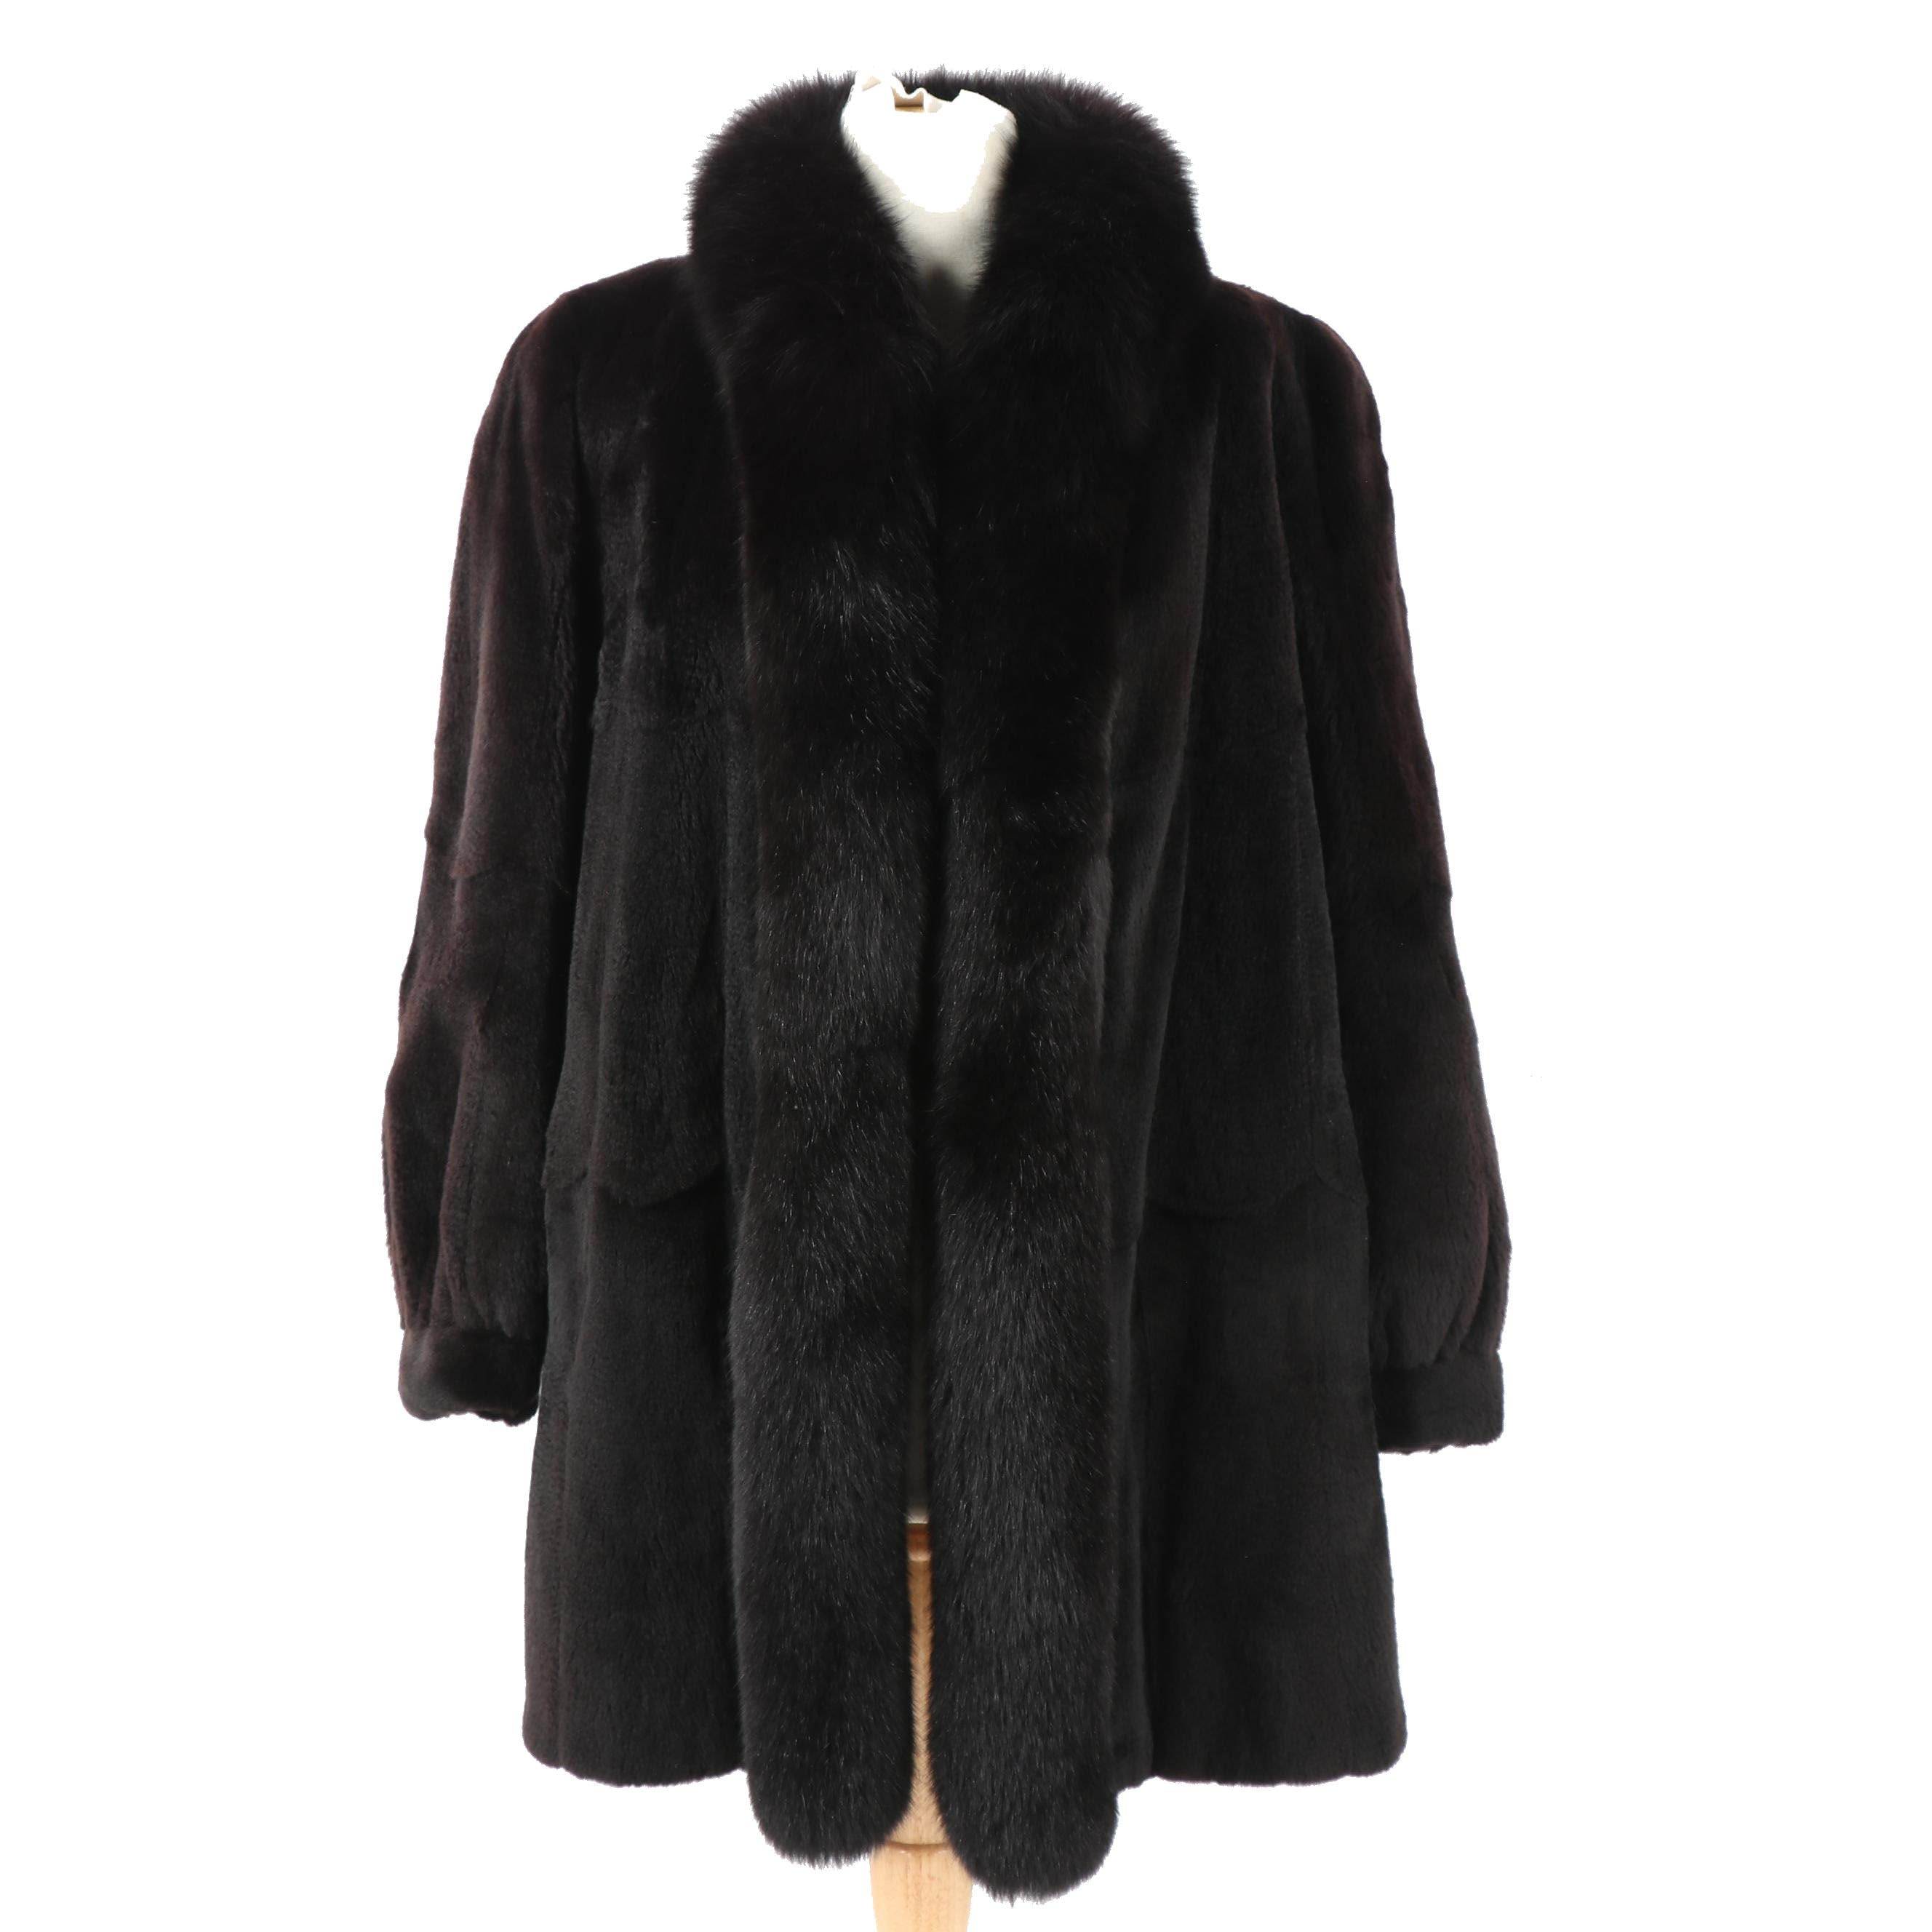 Women's Dyed Black Sheared Beaver Fur Coat with Fox Fur Shawl Collar